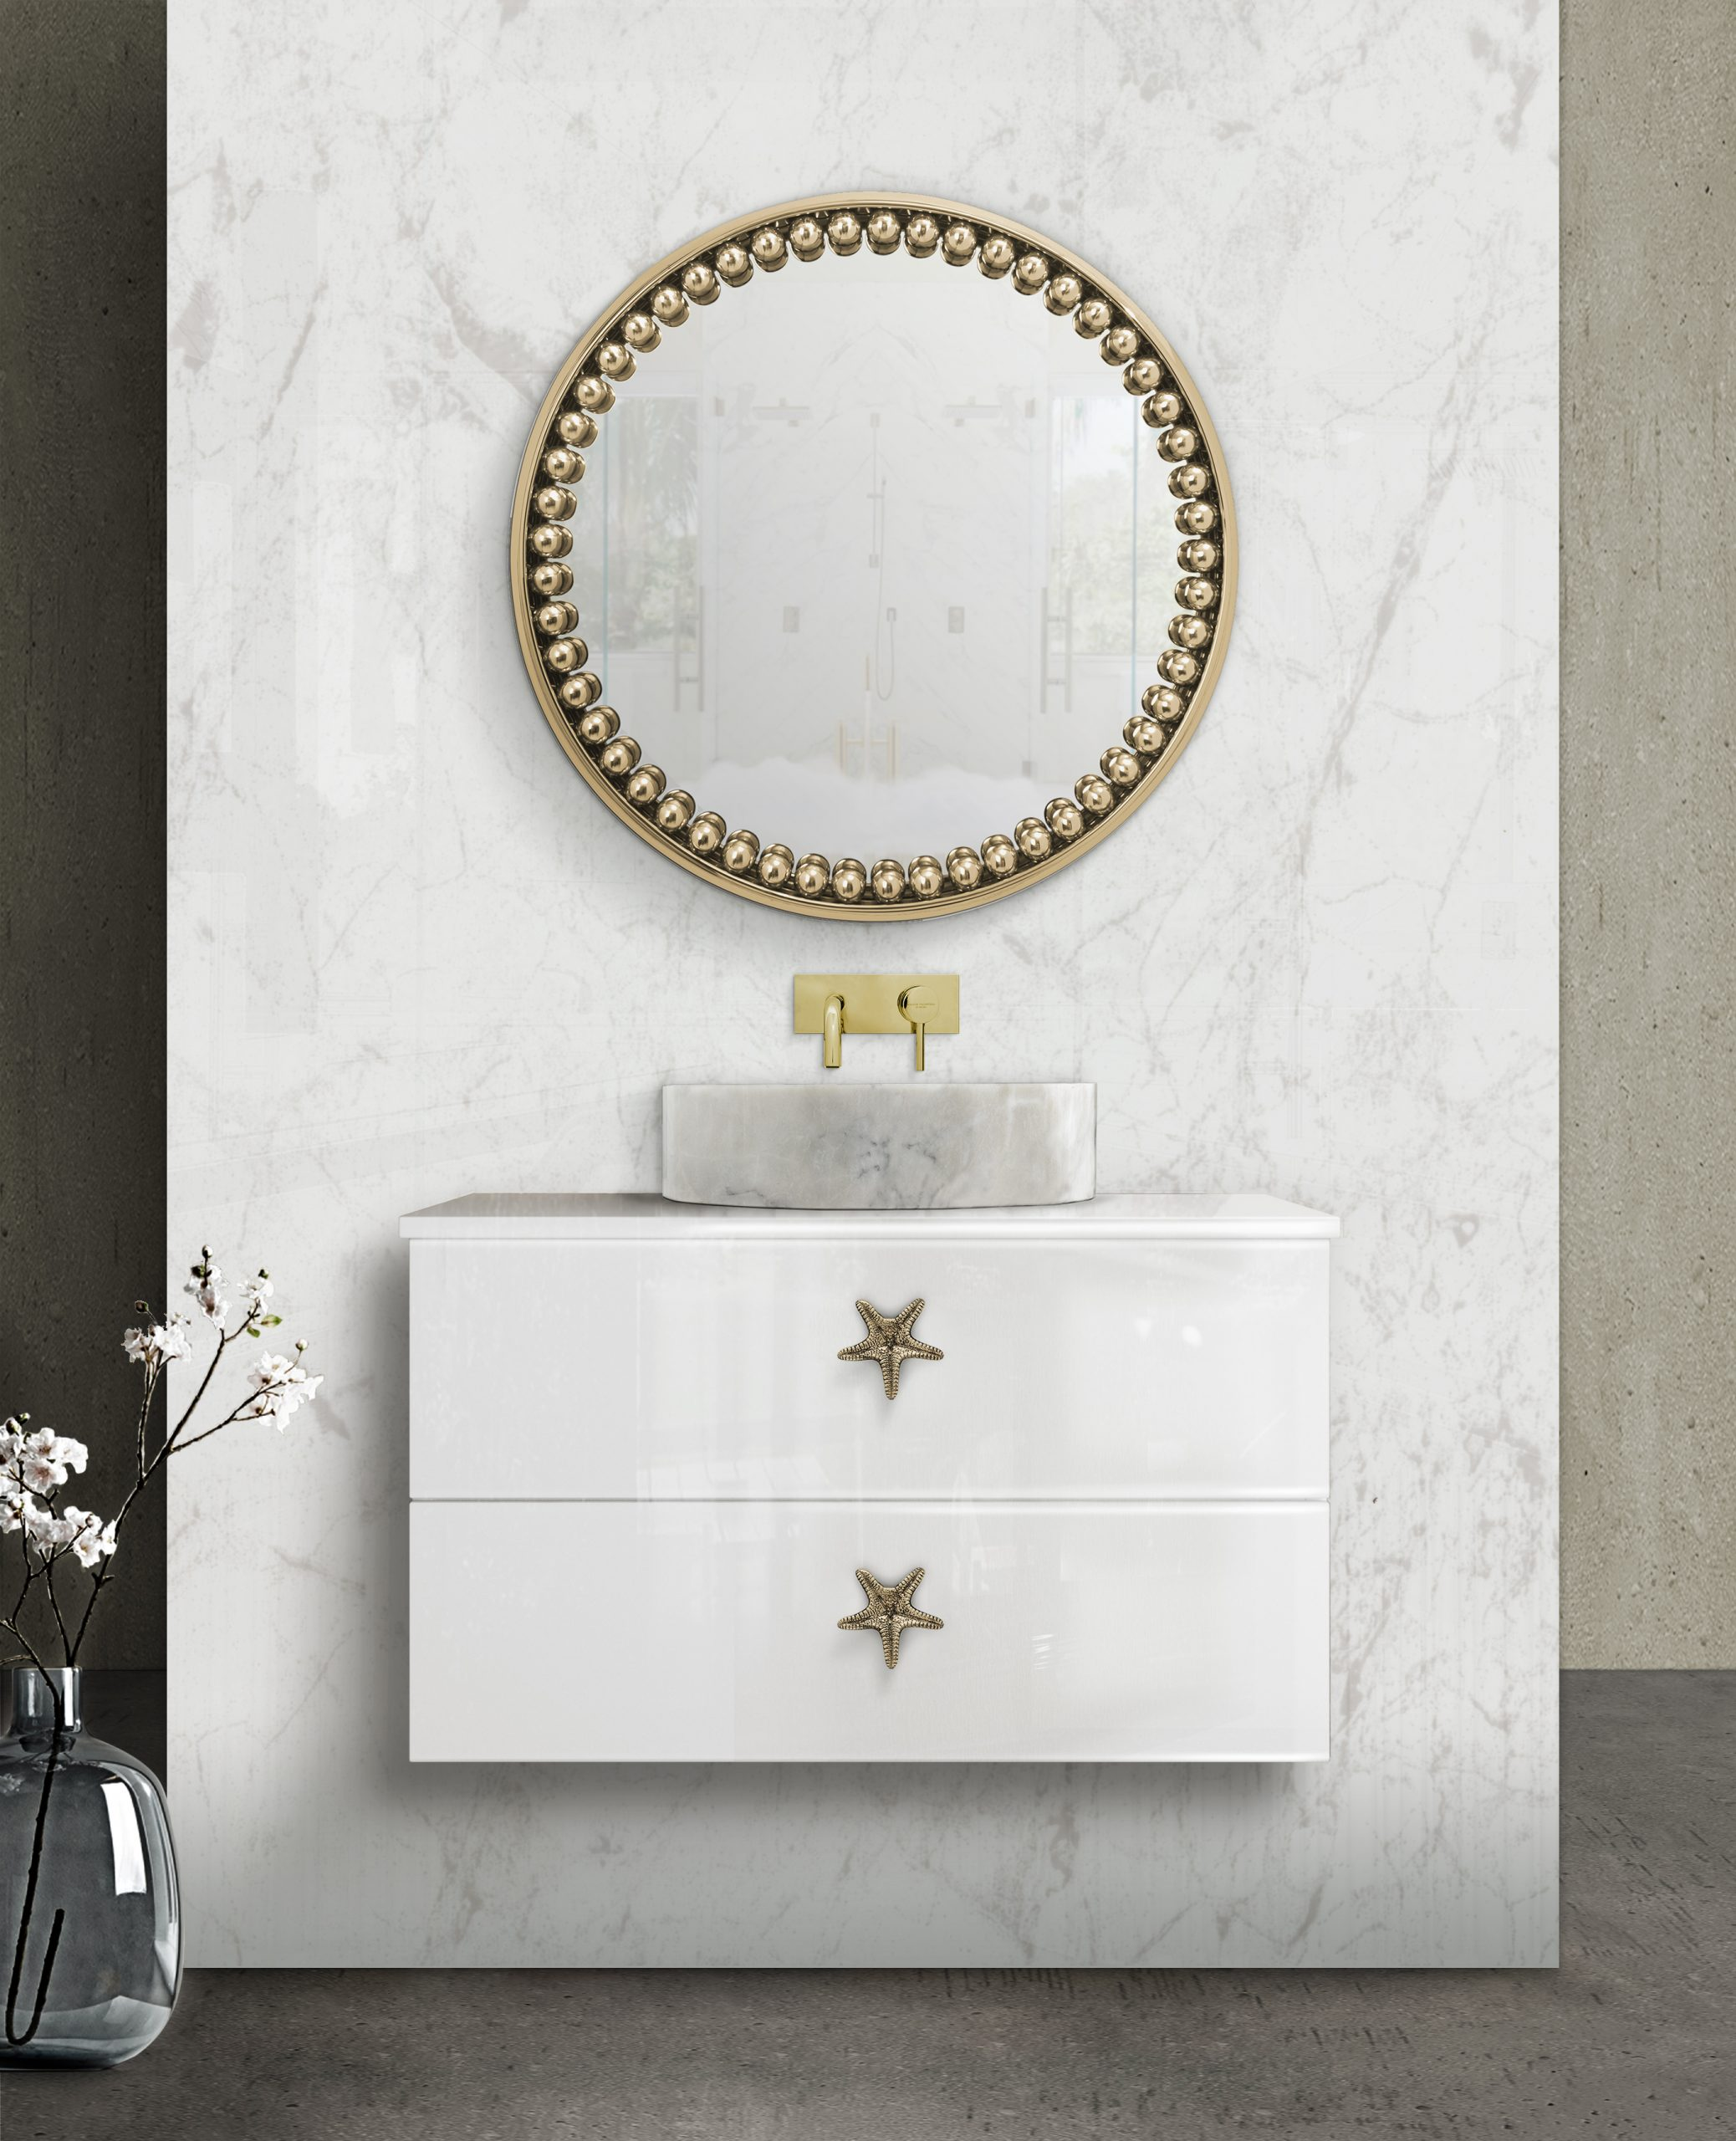 Summer Decor Ideas For a Stylish Staycation With The Best Hardware summer Summer Decor Ideas For a Stylish Staycation With The Best Hardware bathroom s15 copy scaled